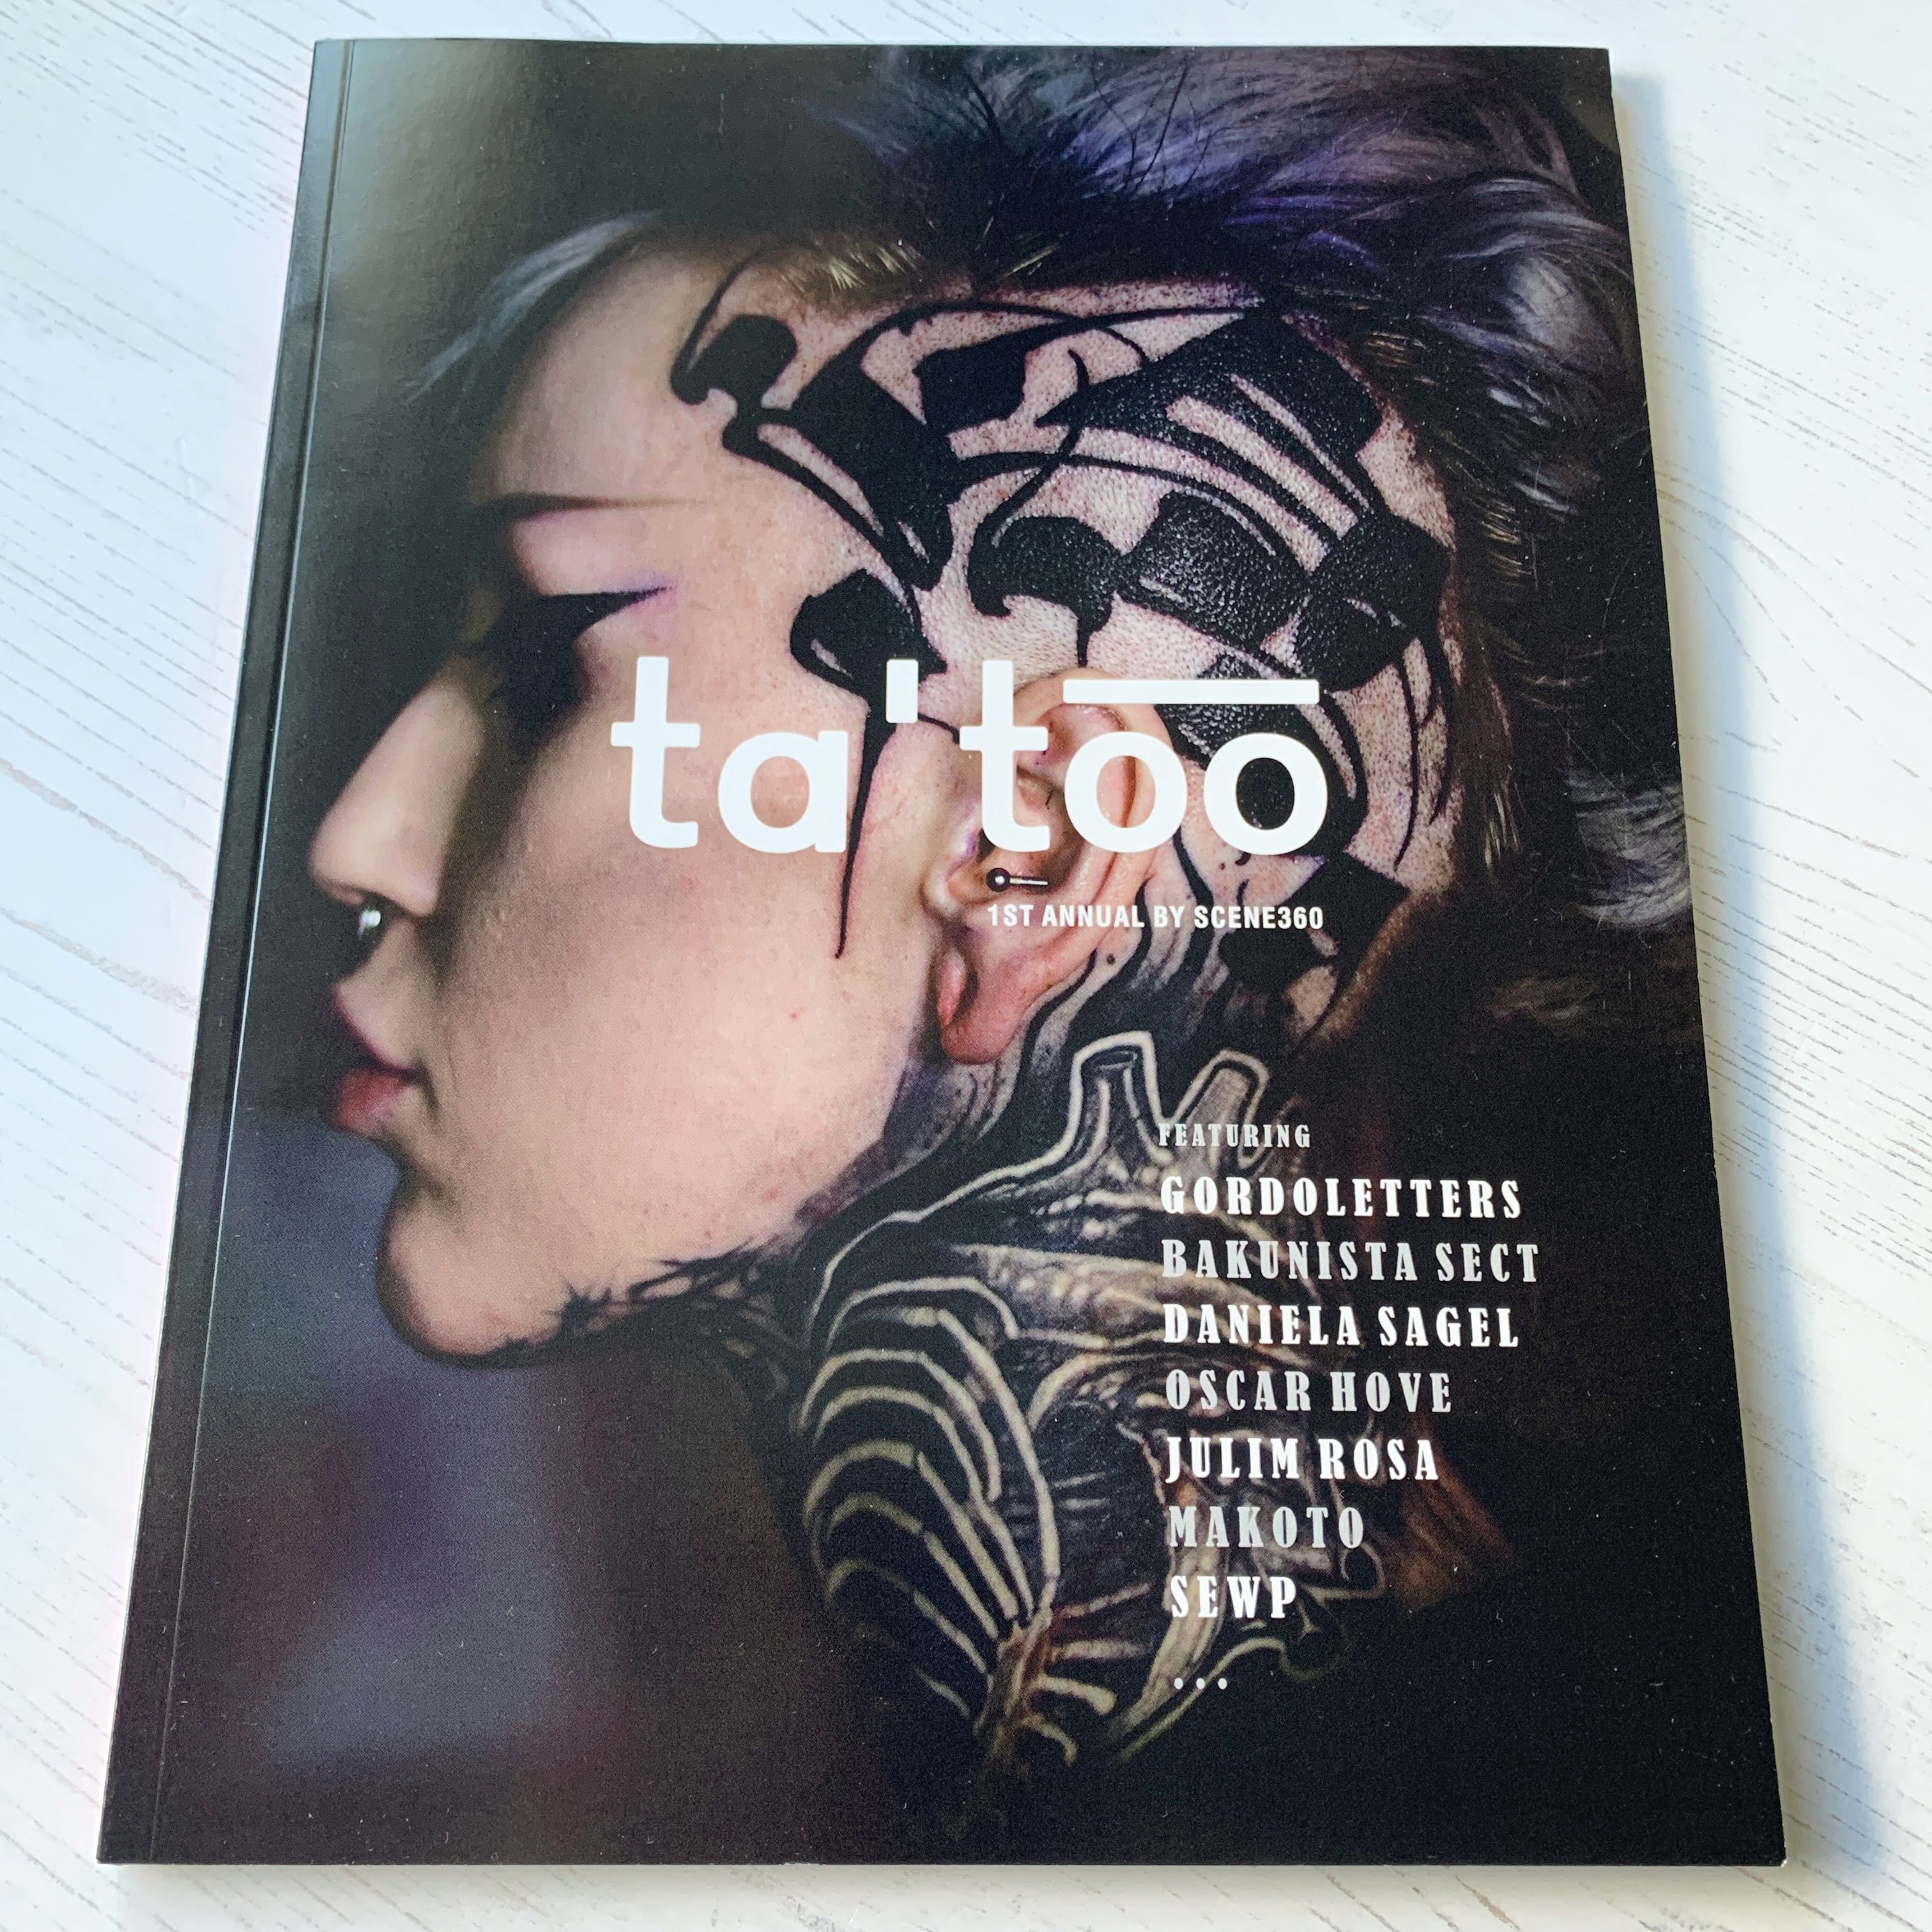 First issue of ta'too book created for Scene 360's 20th anniversary. Featuring a collective of brilliant tattoo artists, their work and interviews. #tattoo #tattoobook #inked #tattooart #tattooartists #scene360 #inkedgirls #inkedboys